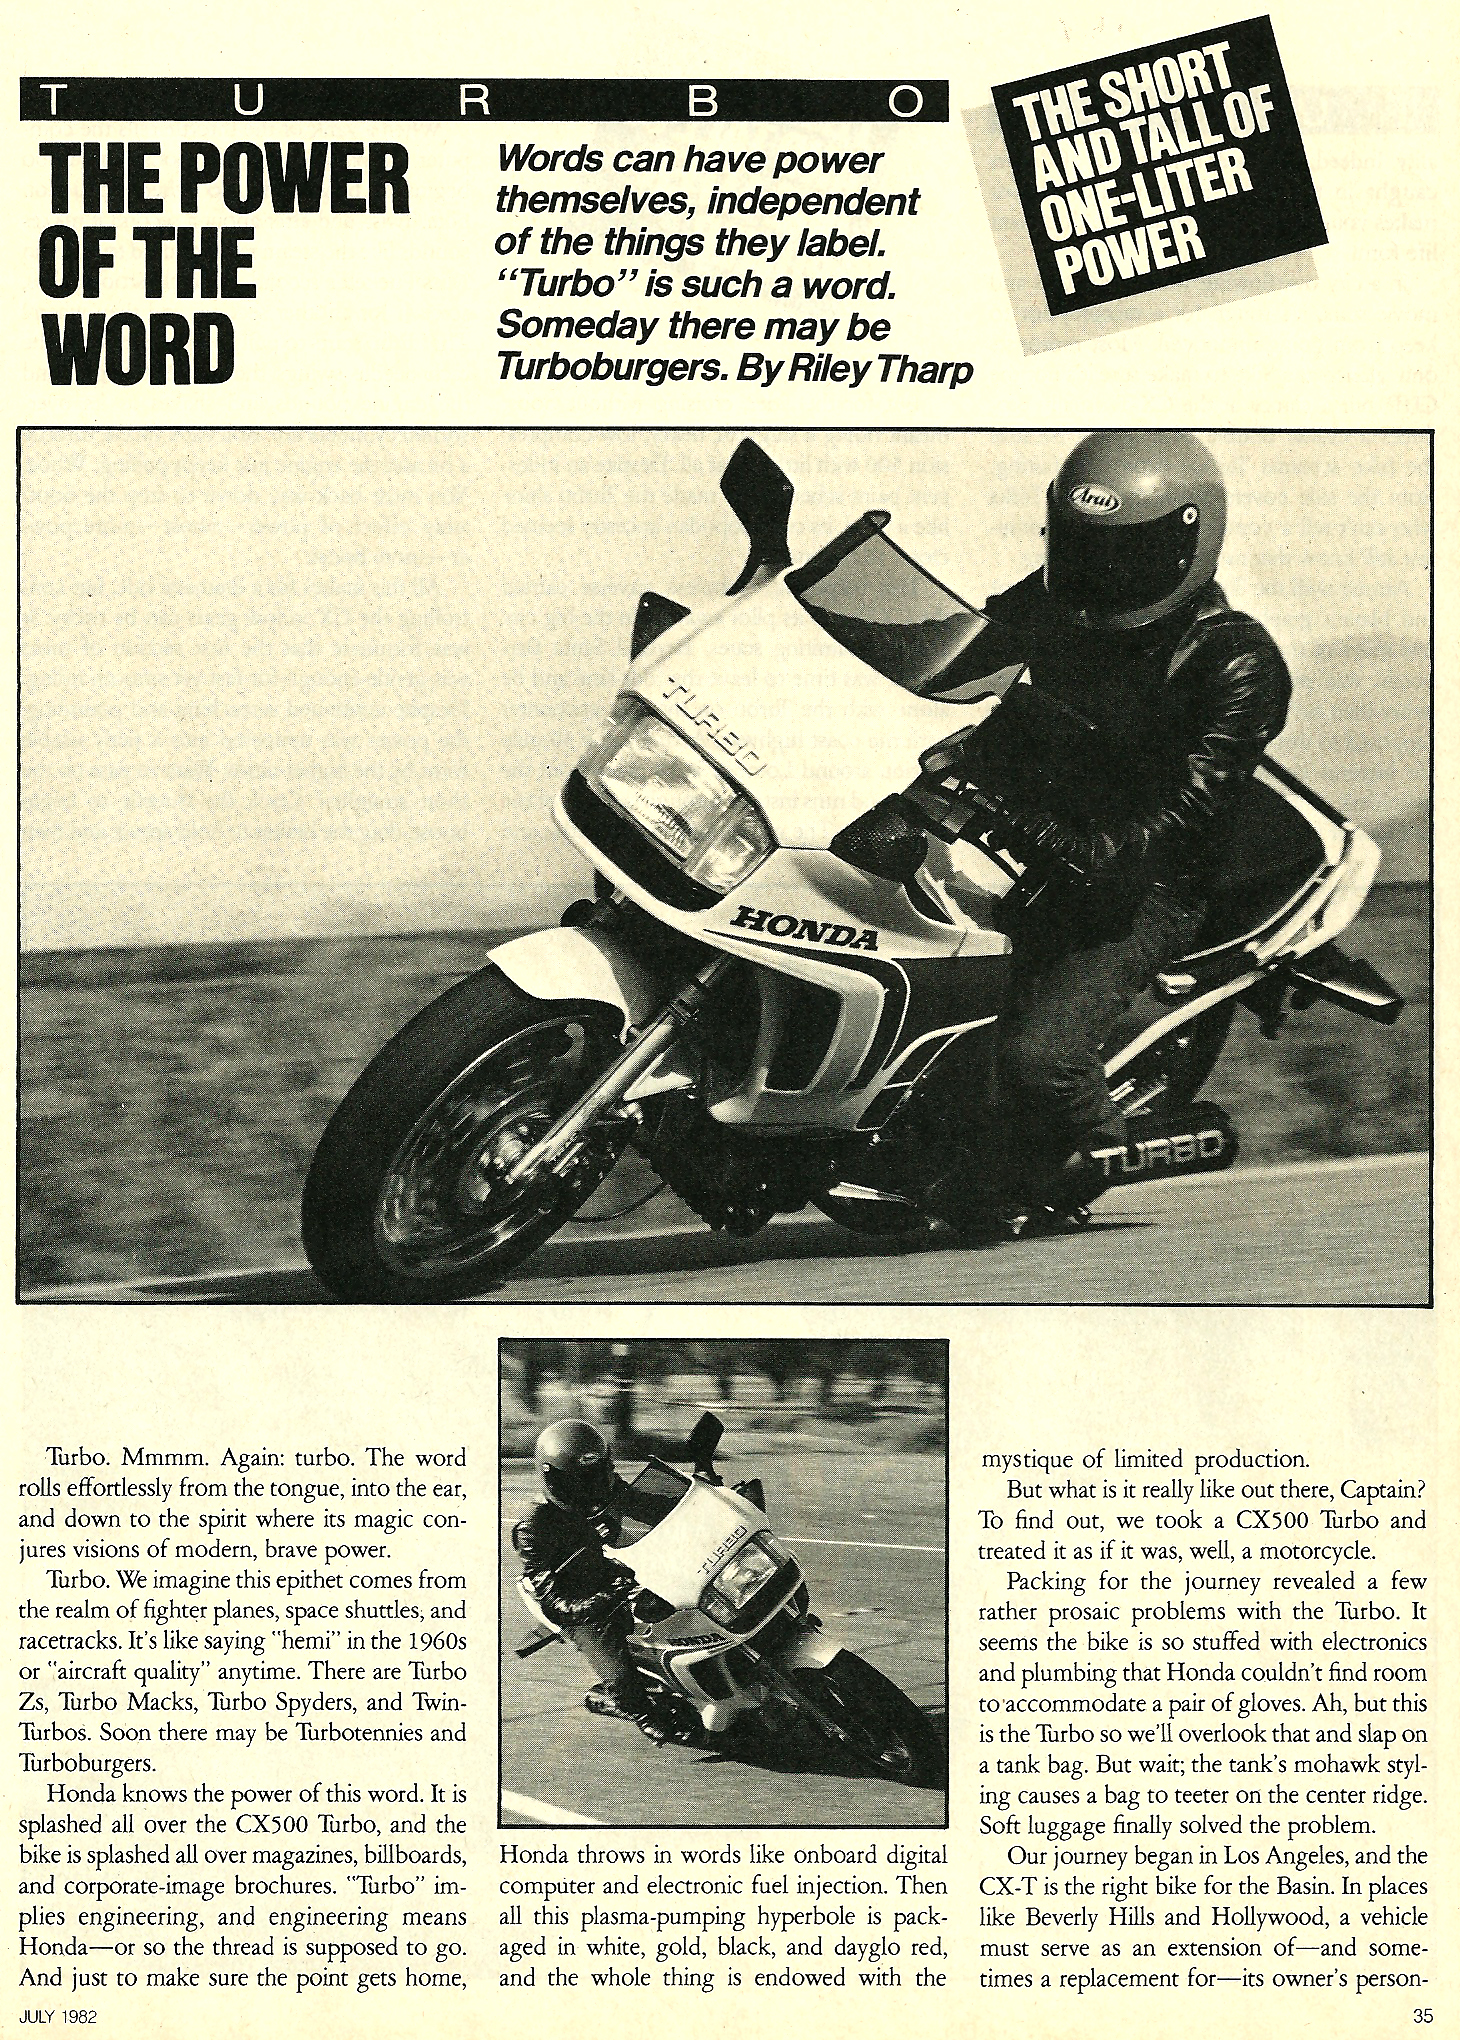 1982 Honda CBX vs CX 500 Turbo road test 05.jpg